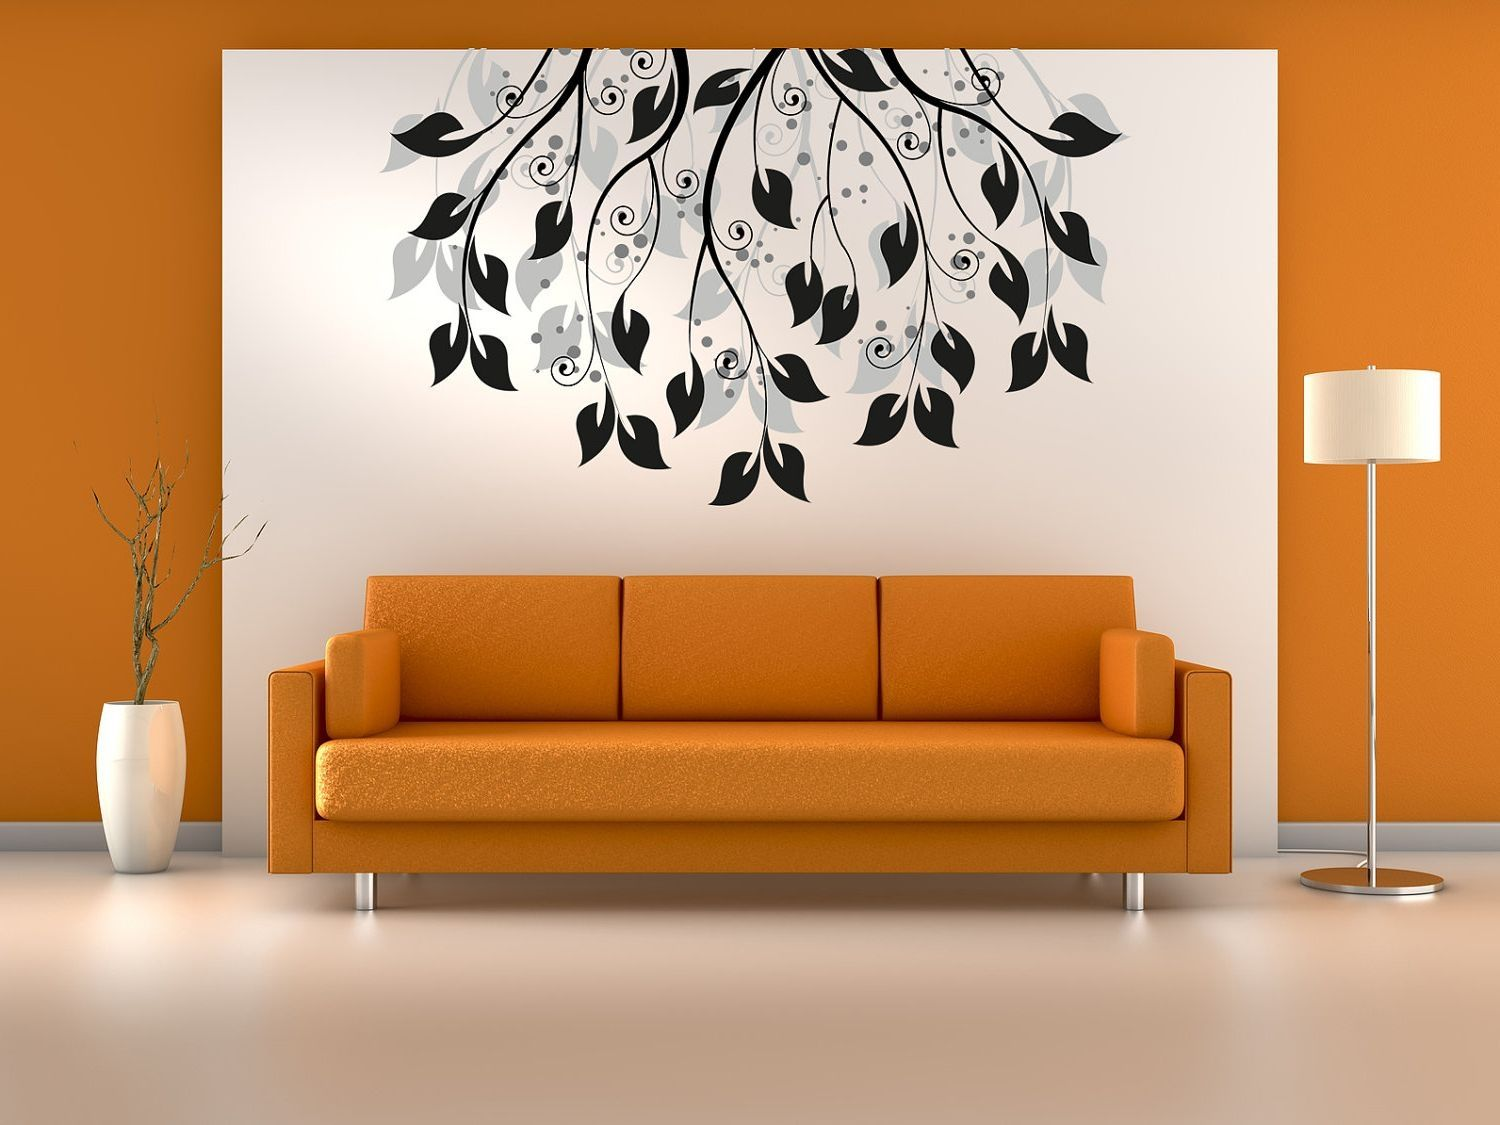 Superior Wall Art Ideas For Living Room Large Wall Decor With Canvas Pictures And  Cool Crafts